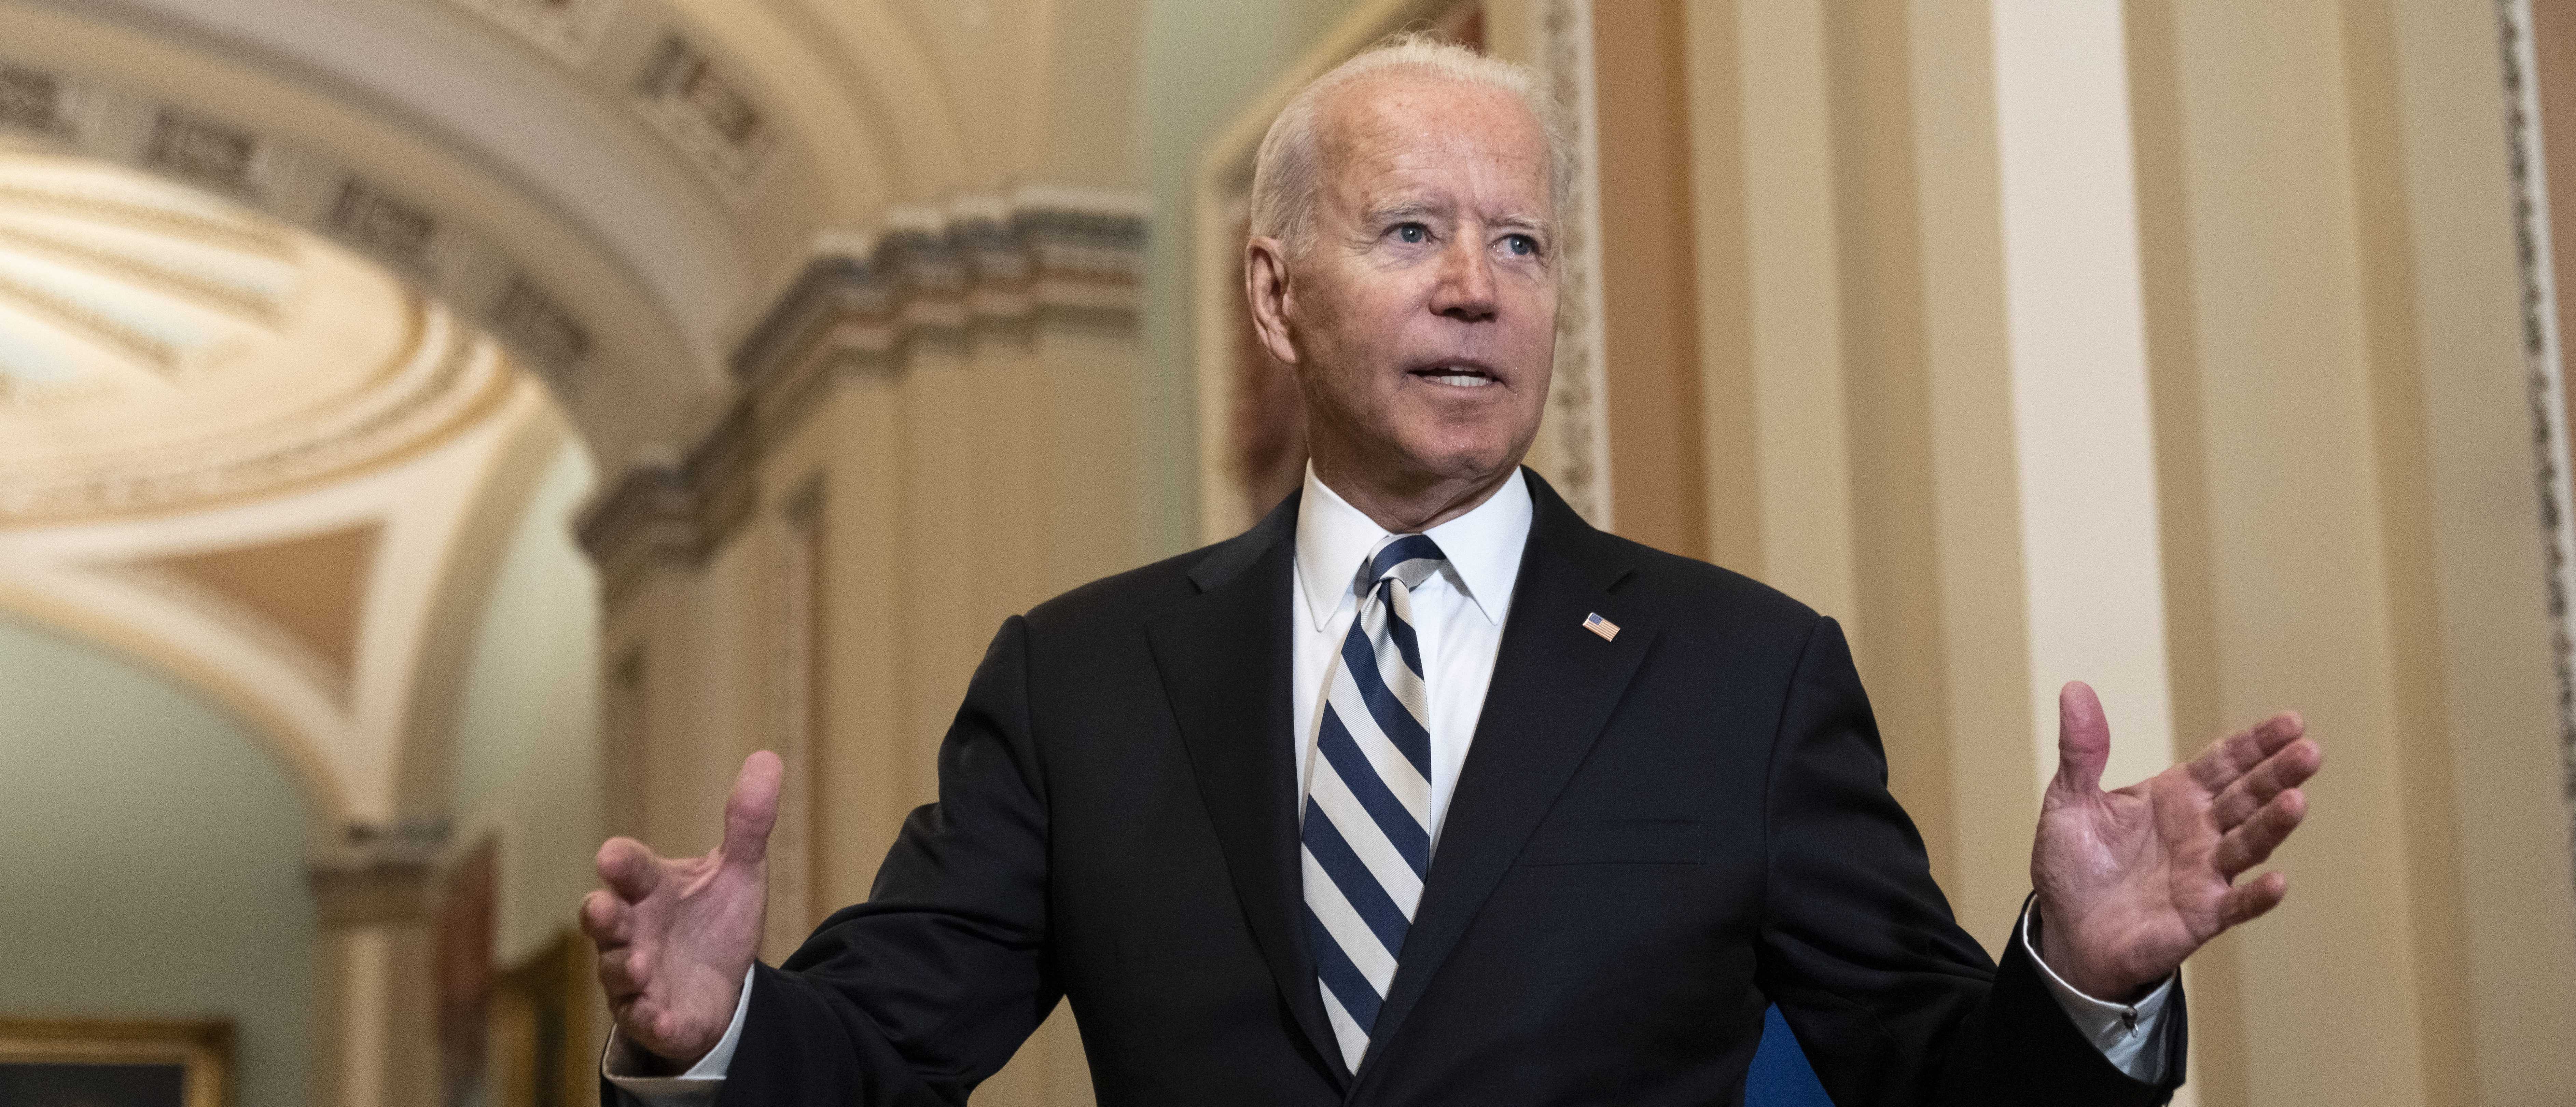 DANIEL: To Biden, 'Unity' Means Crushing All Dissent